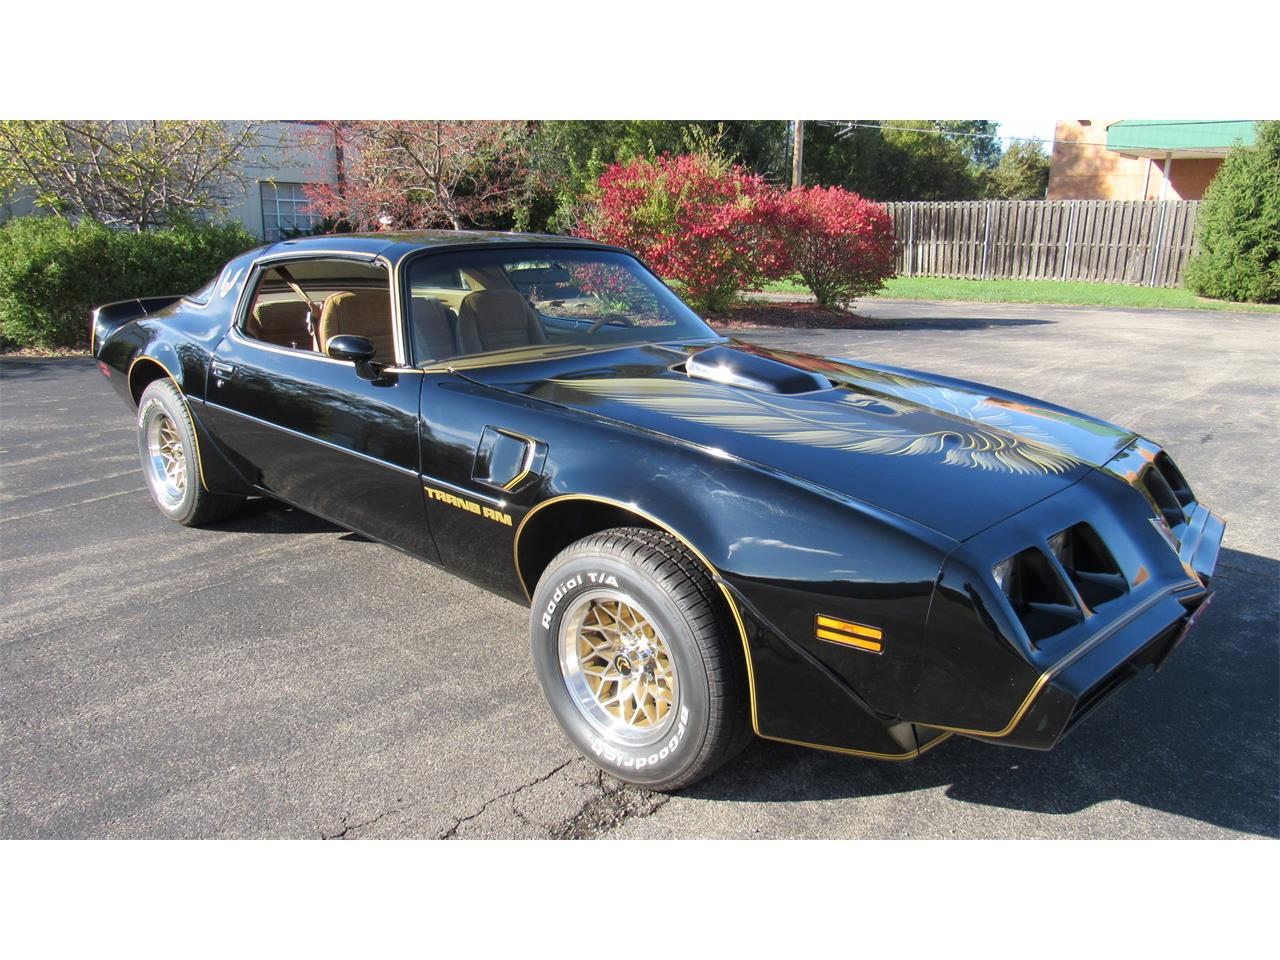 Large Picture of '79 Pontiac Firebird Trans Am located in Milford Ohio - $39,900.00 - M8TS